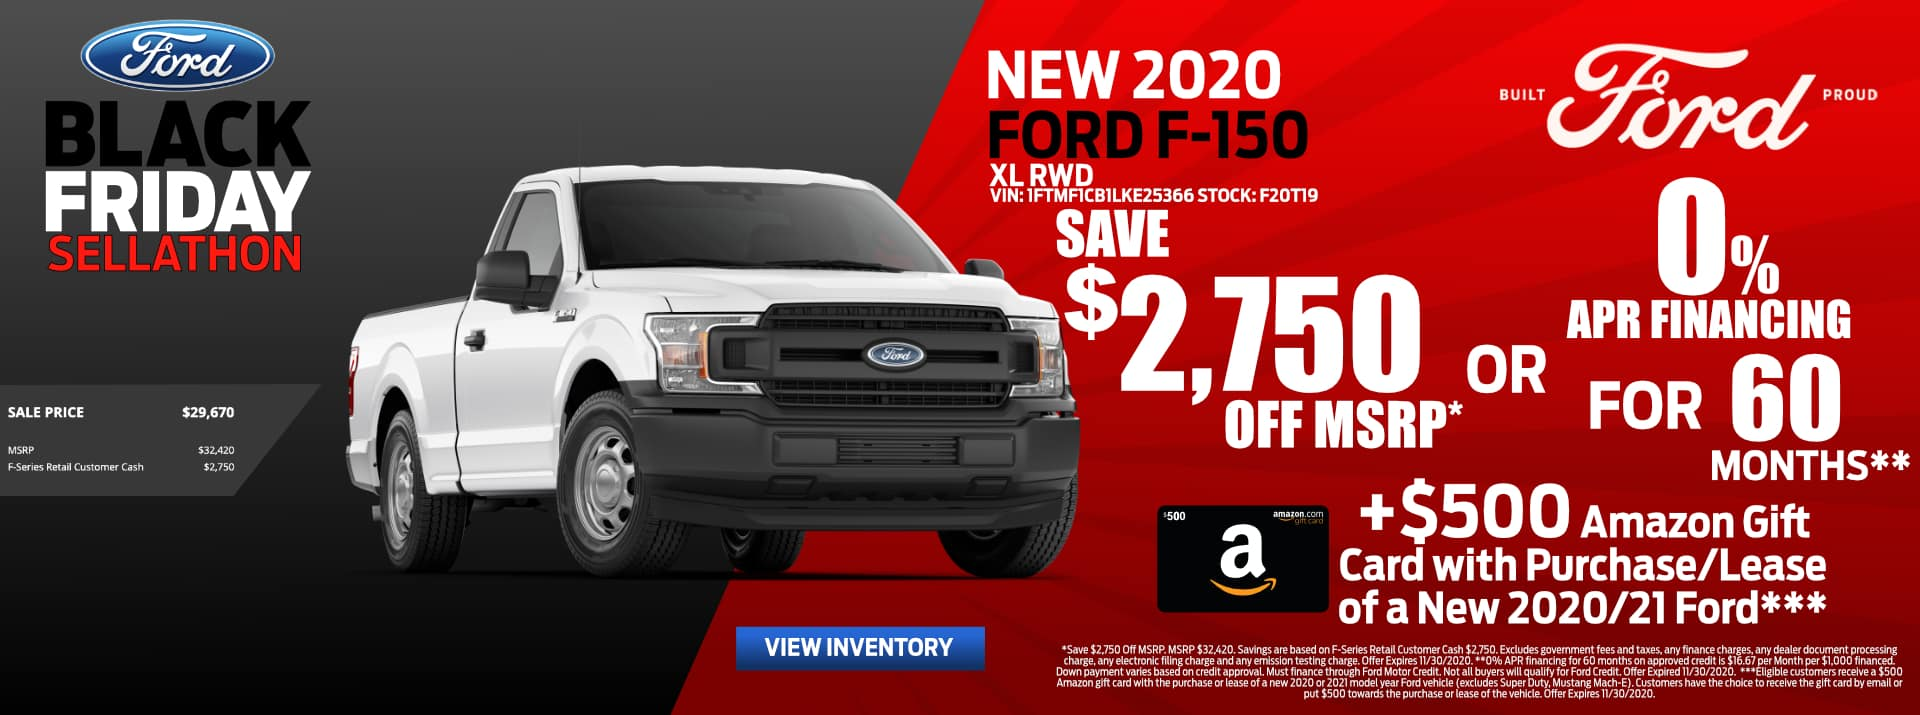 A_Black Friday_November-2020_Ford_F-150 PSF